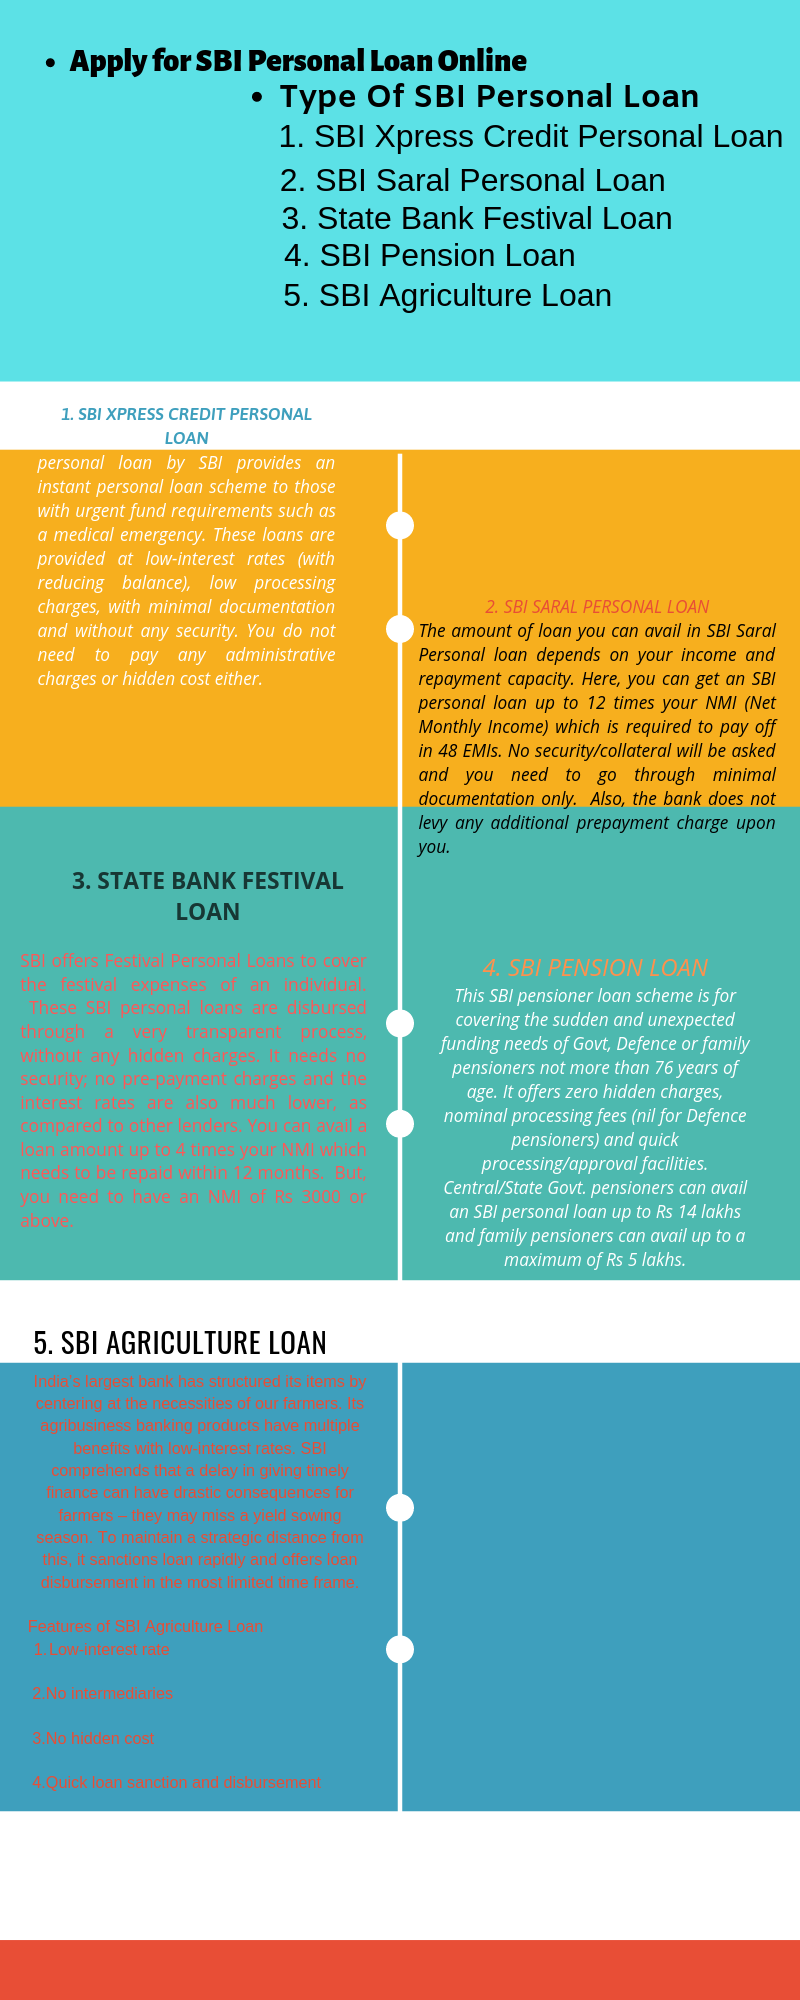 Sbi Personal Loan 2019 Lowest Interest Rate Check Eligibility Apply Instant Loans Agriculture Loan How To Apply